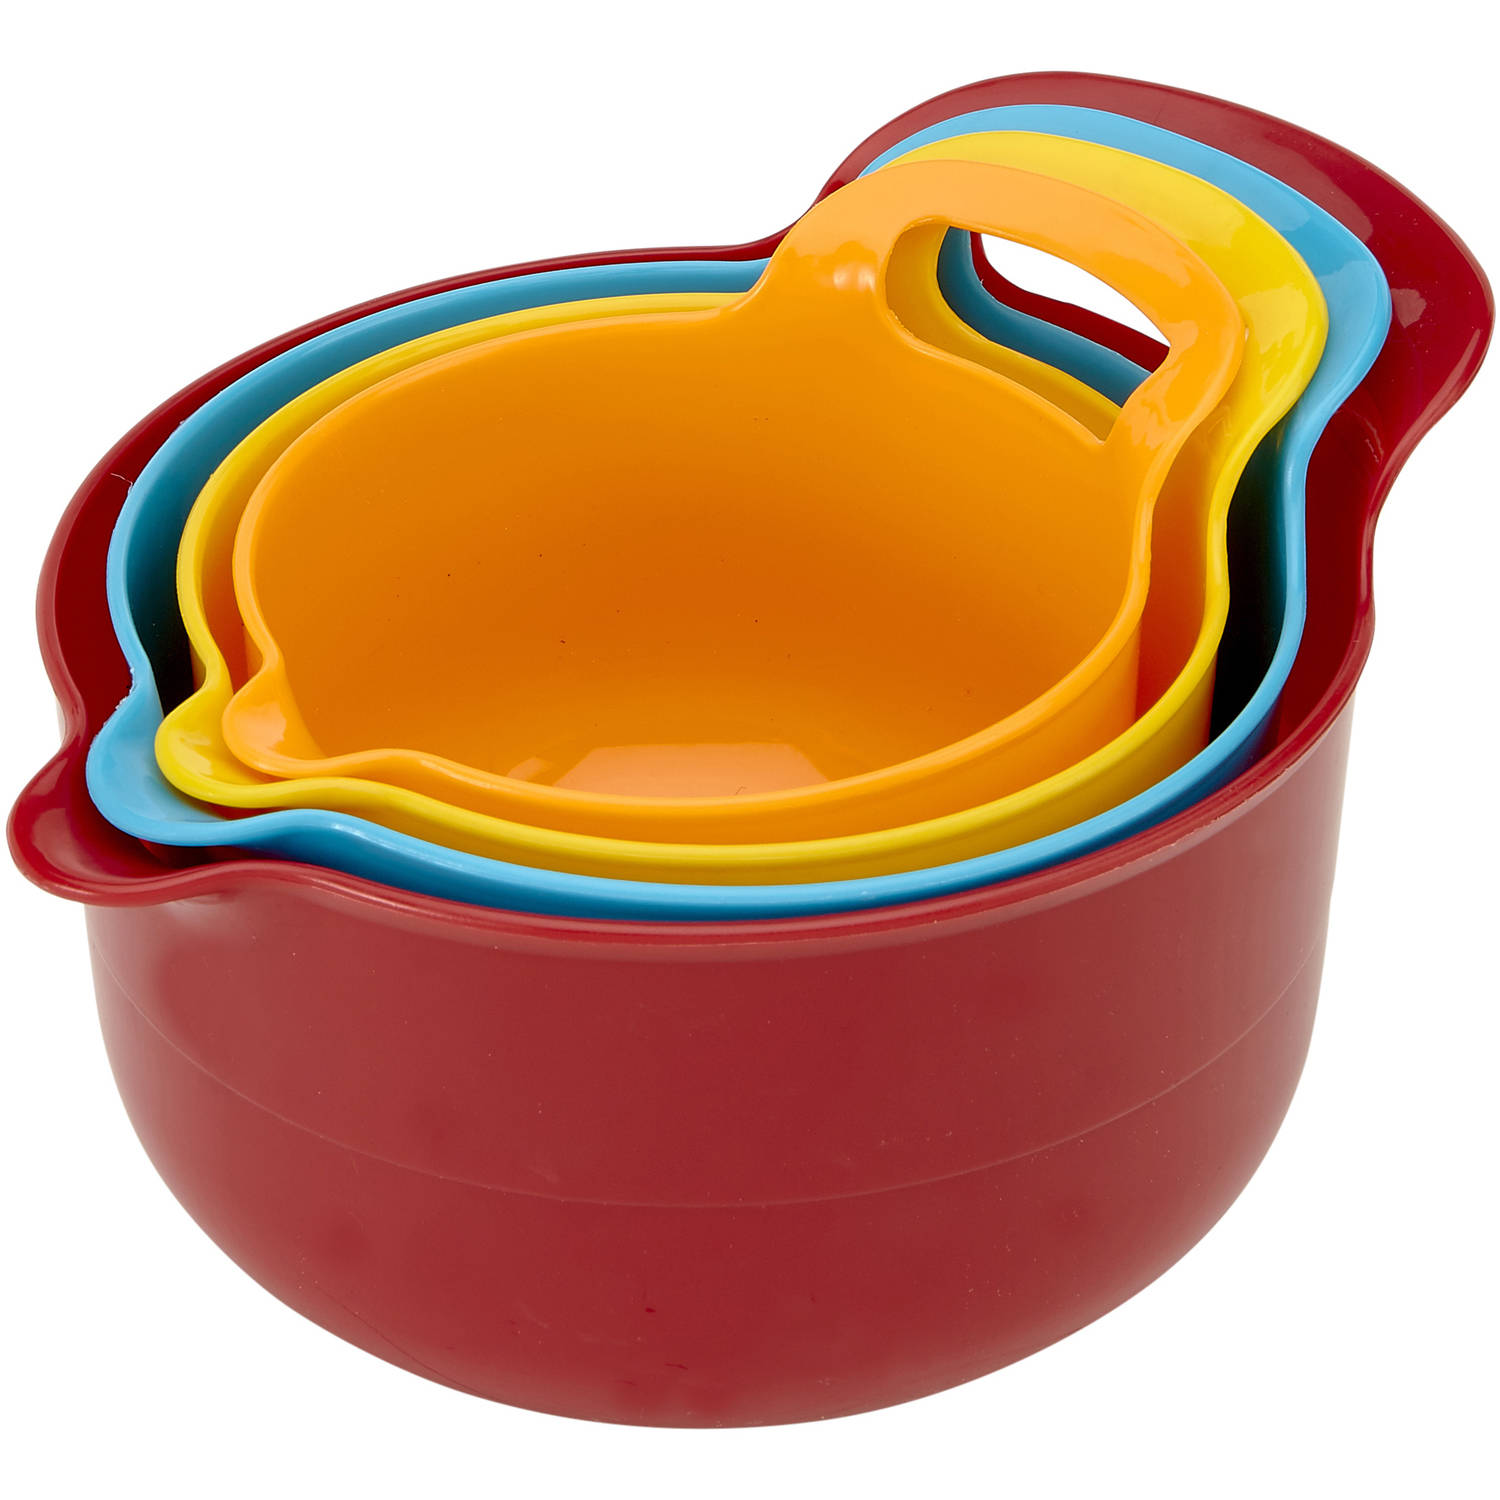 Kitchen Details 4-Piece Mixing Bowl Set